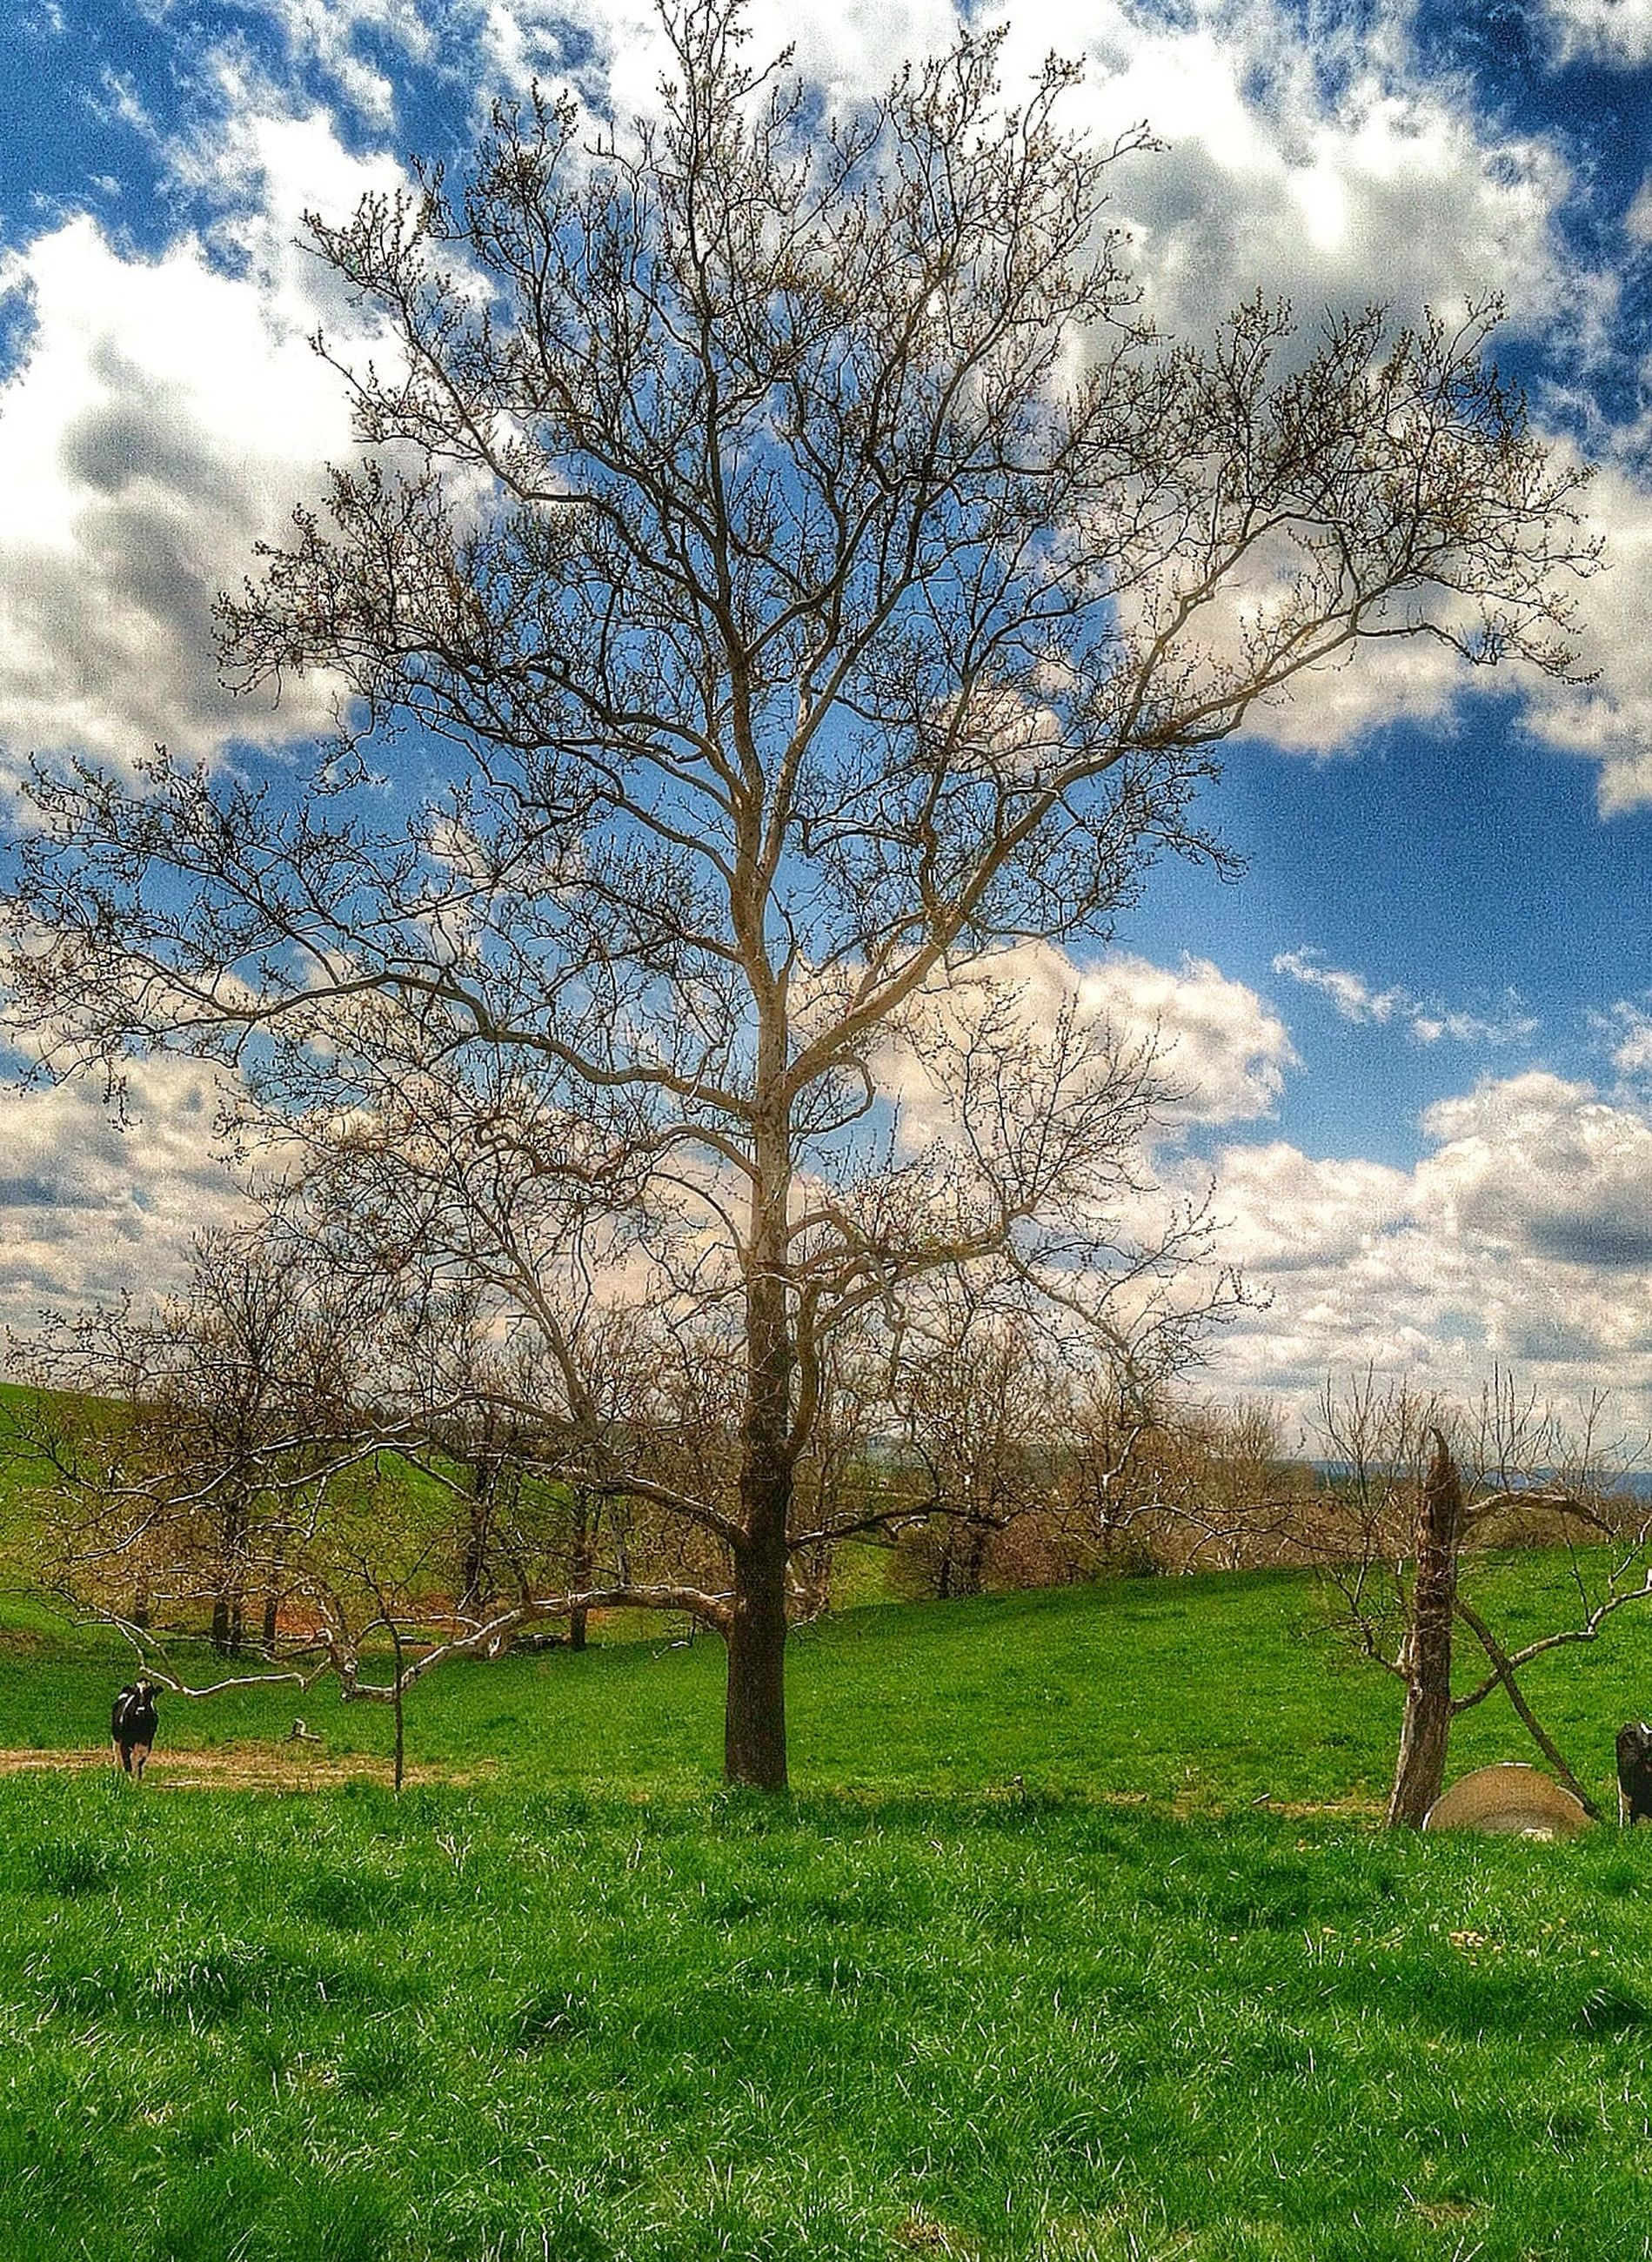 grass, tree, tranquility, water, sky, nature, beauty in nature, tranquil scene, field, green color, growth, scenics, cloud - sky, grassy, day, landscape, branch, outdoors, idyllic, weather